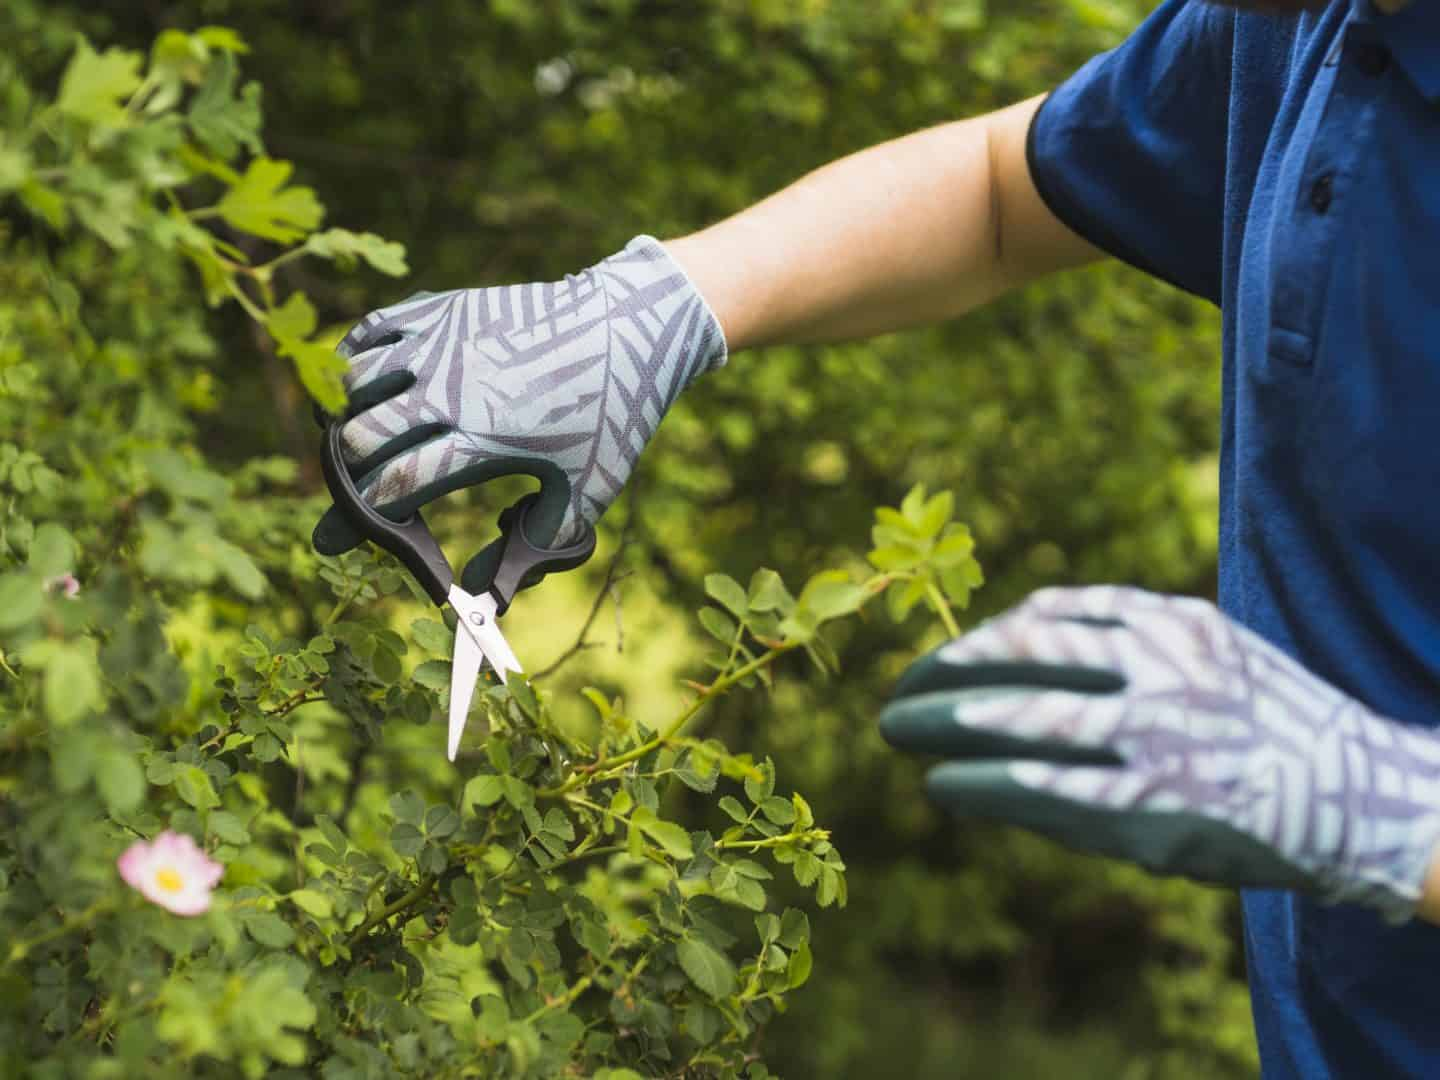 Male Gardener Pruning Hands Bush